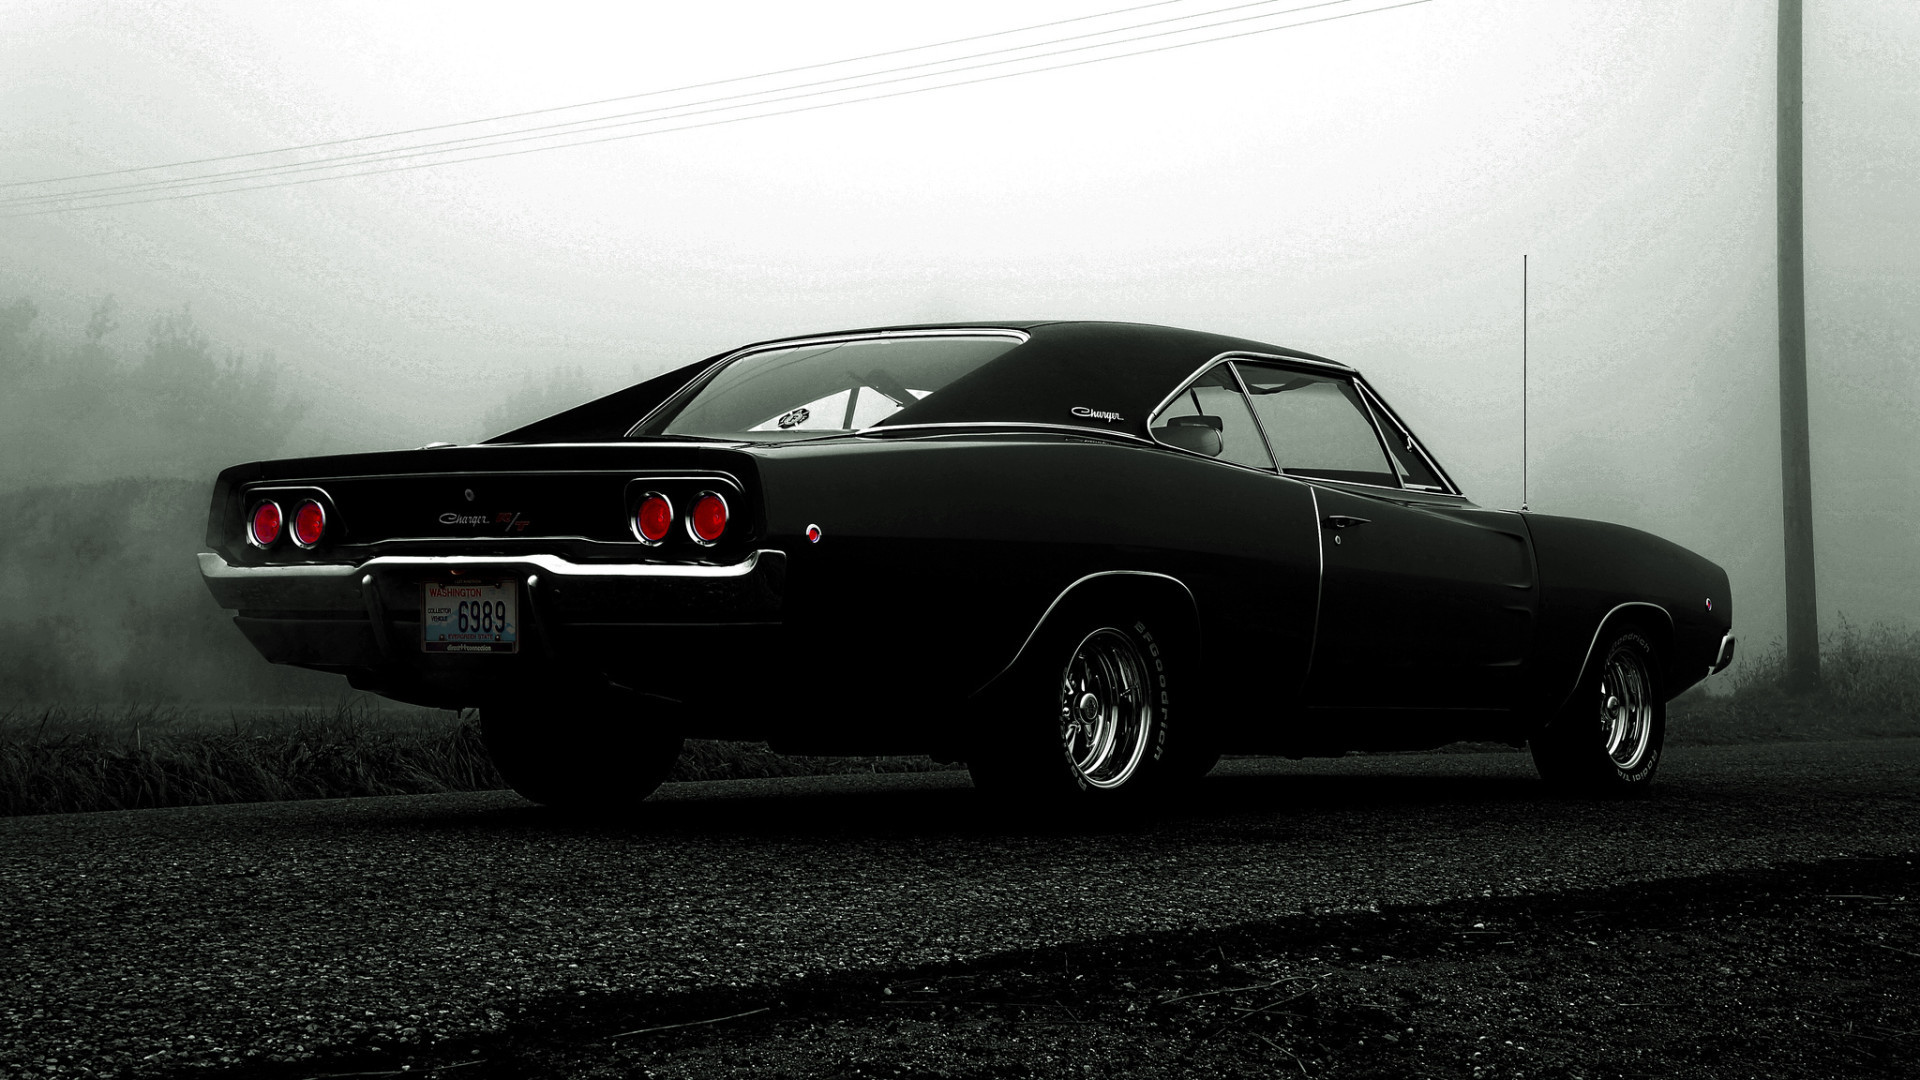 1969 Dodge Charger Wallpaper 183 ① Wallpapertag